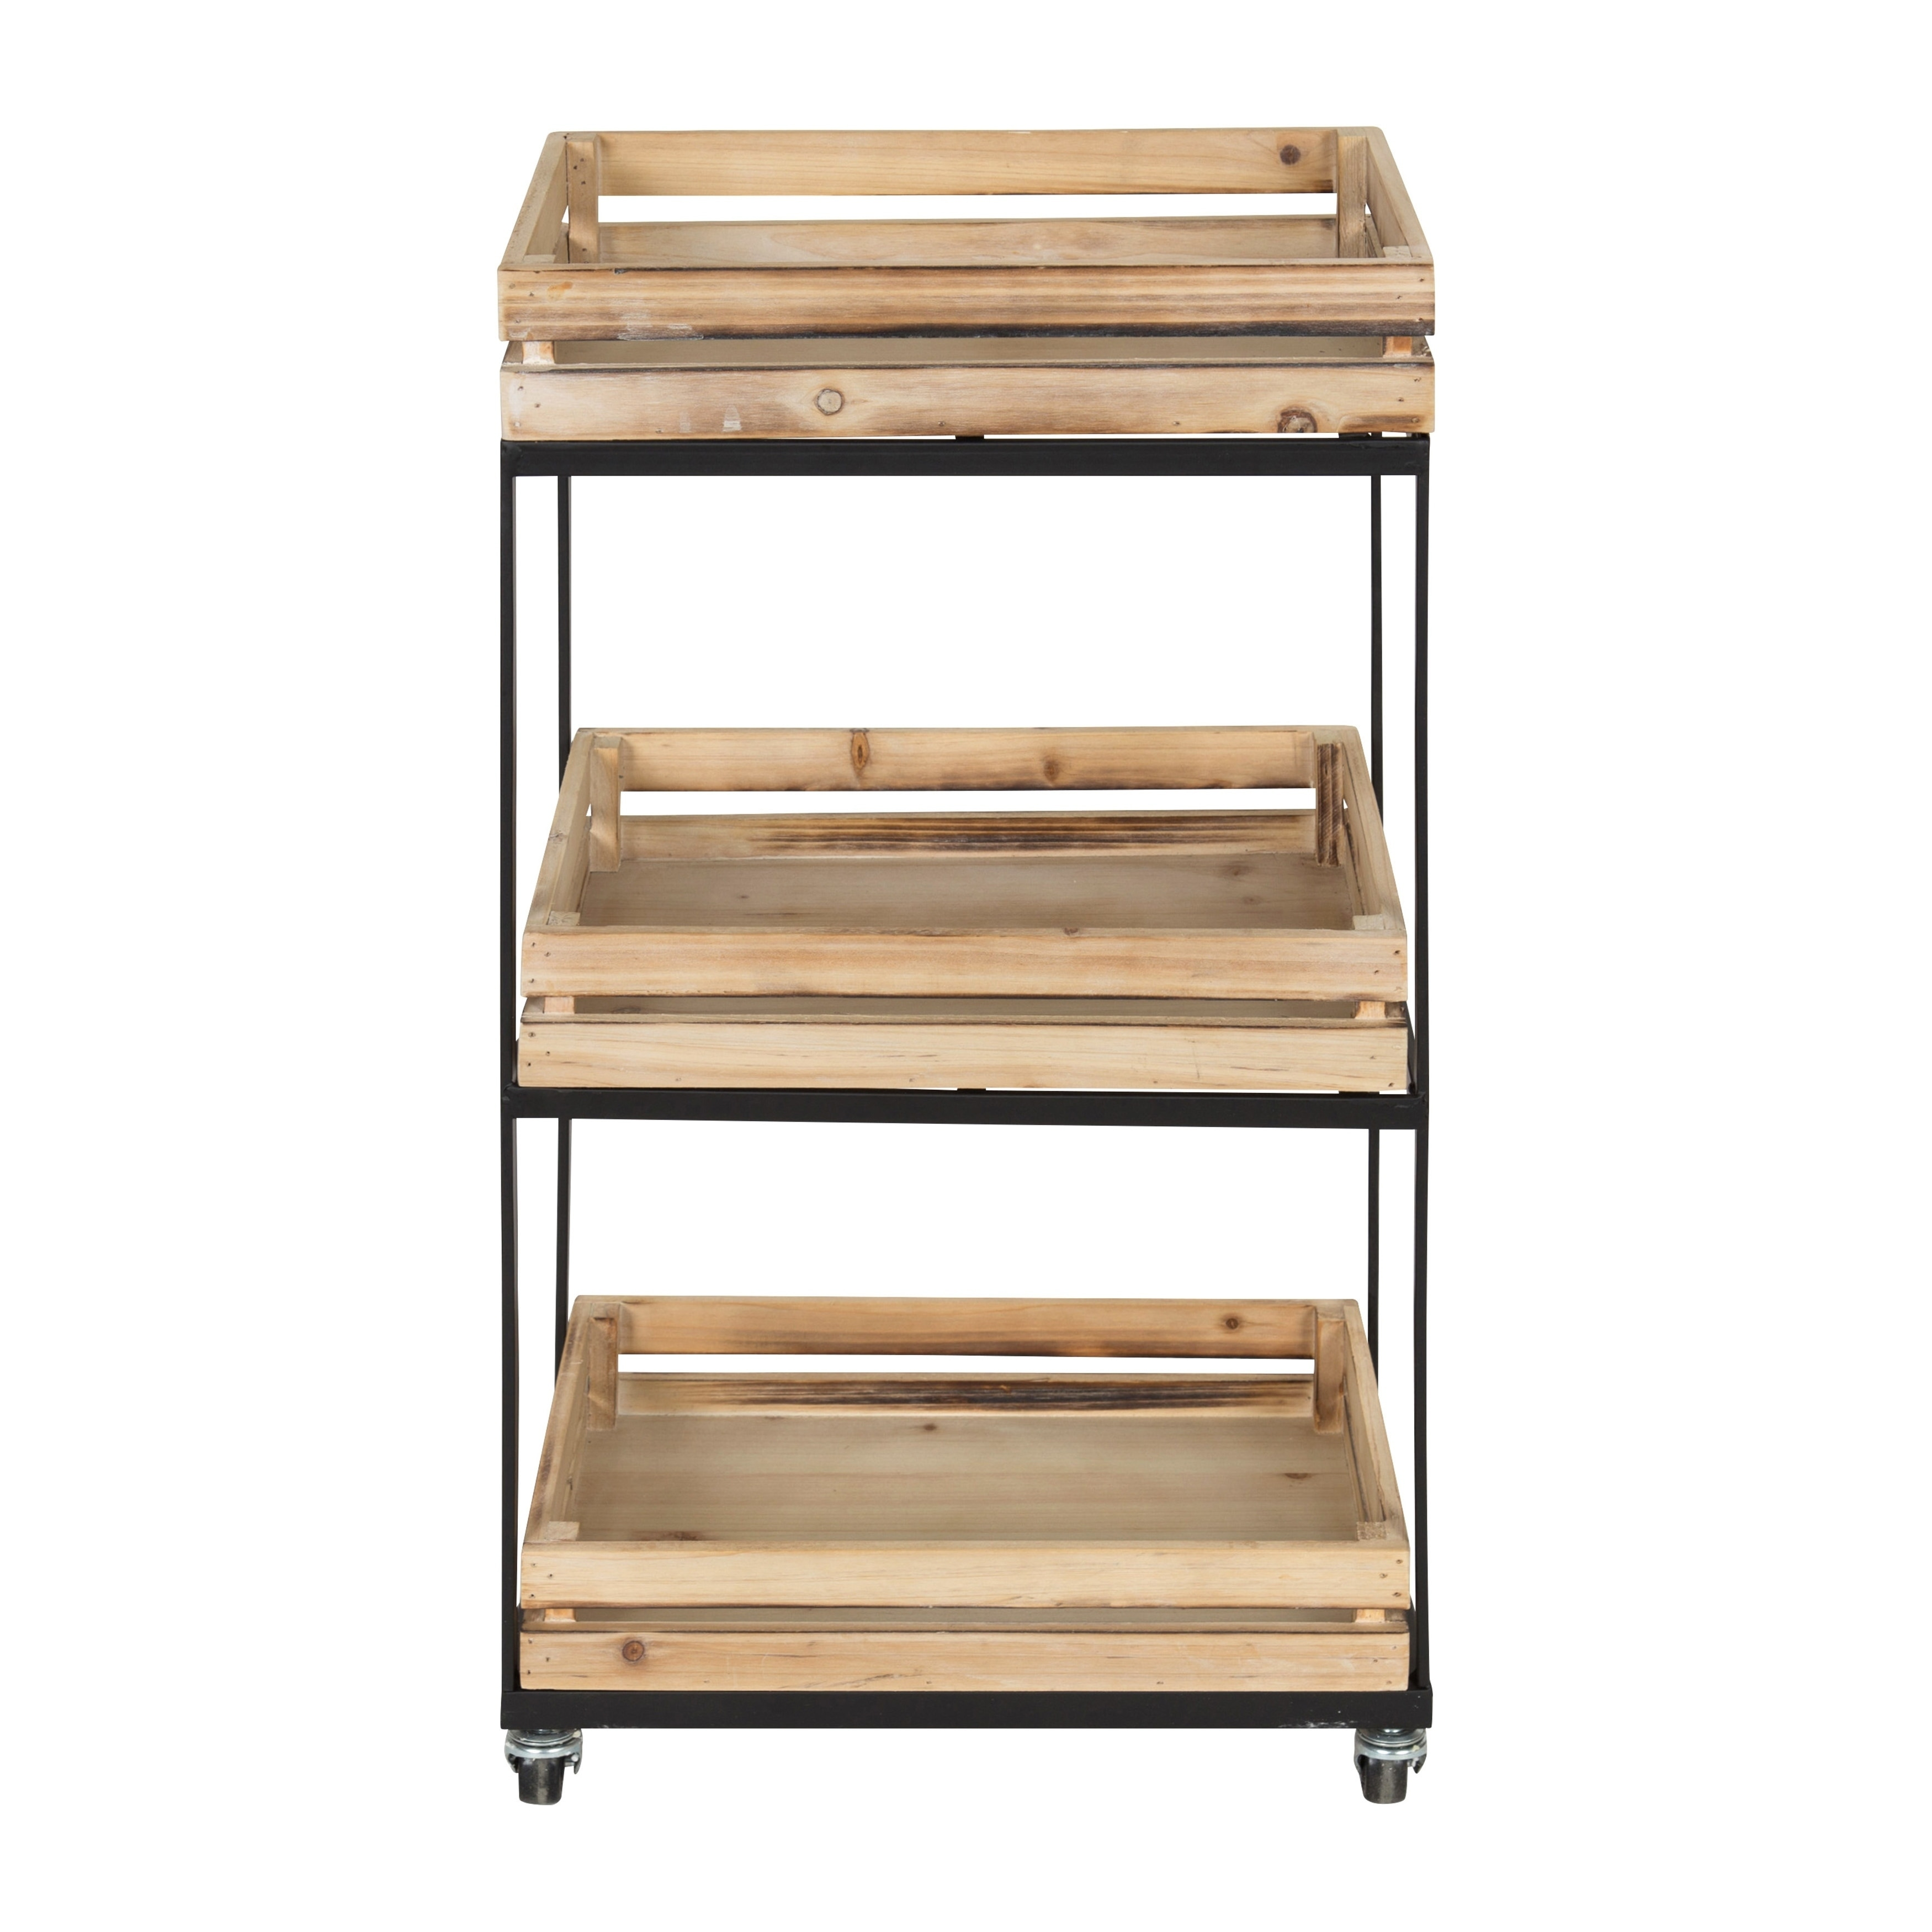 Shop Usman 3 Tiered Storage Cart With Wheels Wood with Black Metal Frame - Free Shipping Today - Overstock.com - 20909929  sc 1 st  Overstock.com & Usman 3 Tiered Storage Cart With Wheels Wood with Black Metal Frame